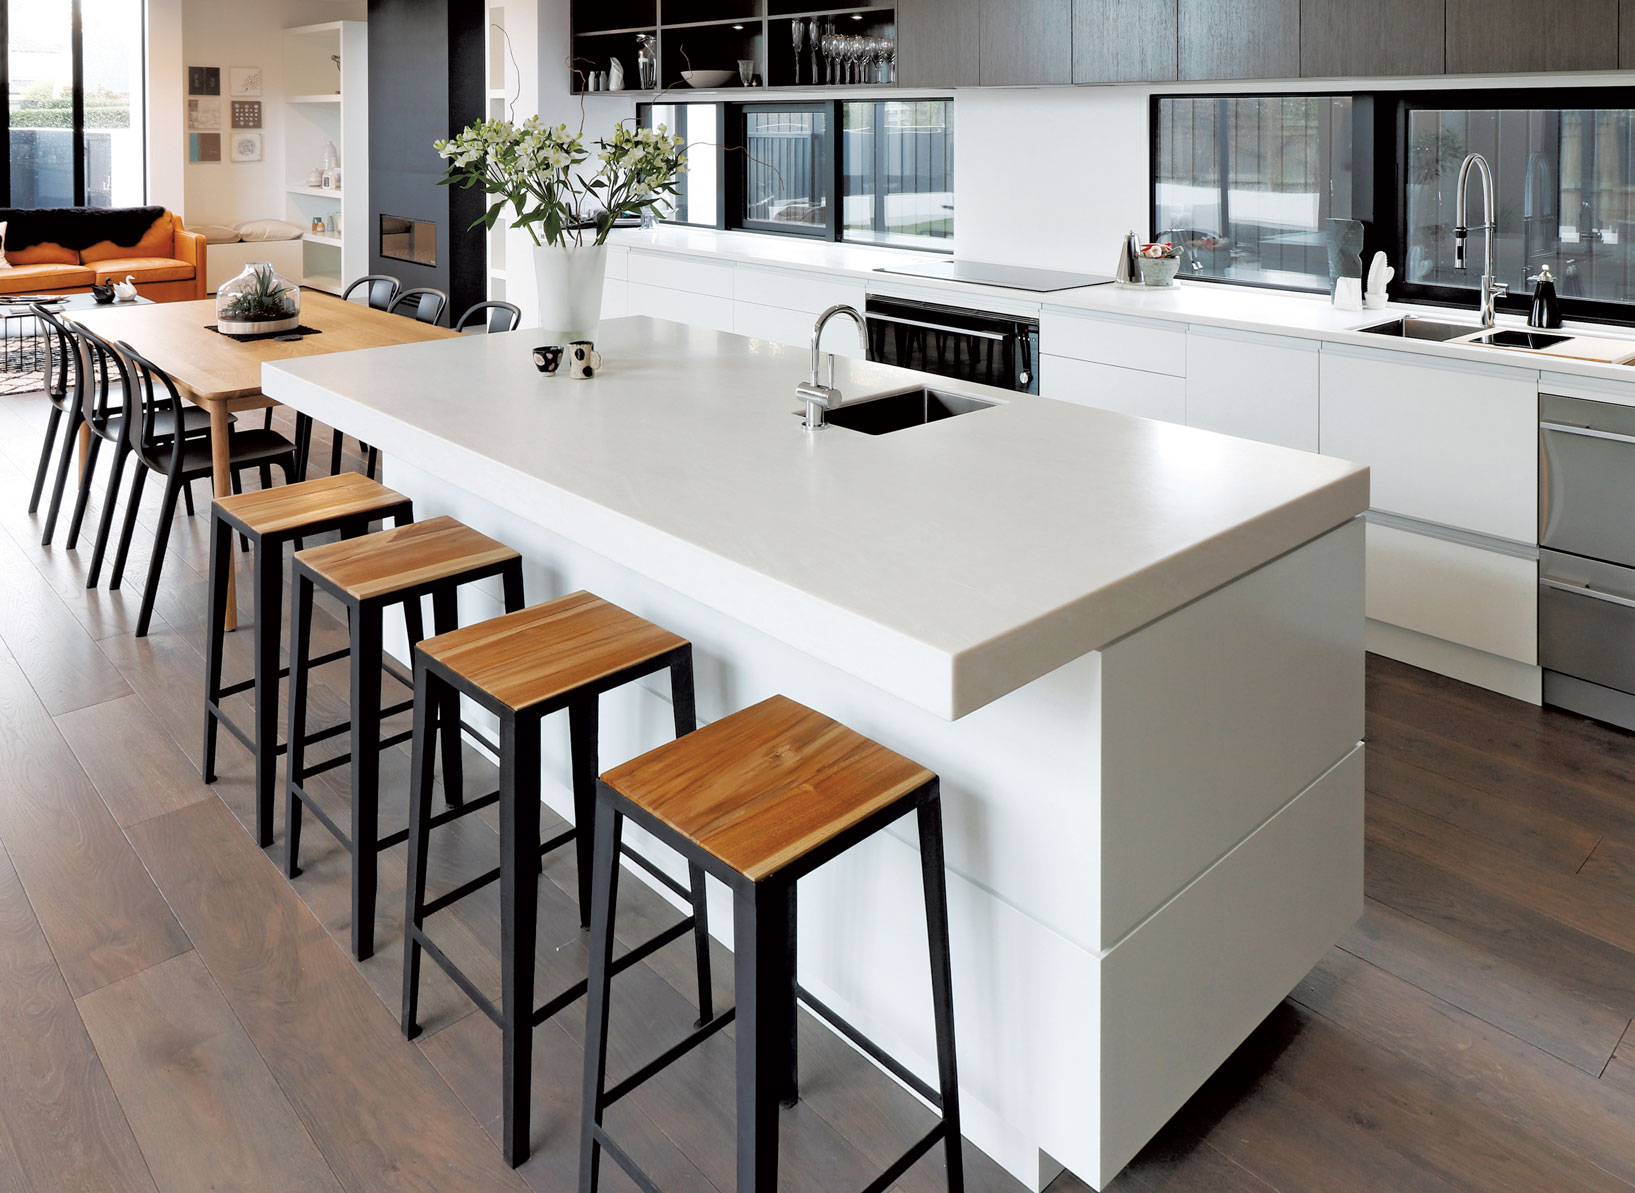 TriStone-Kitchen-01.jpg